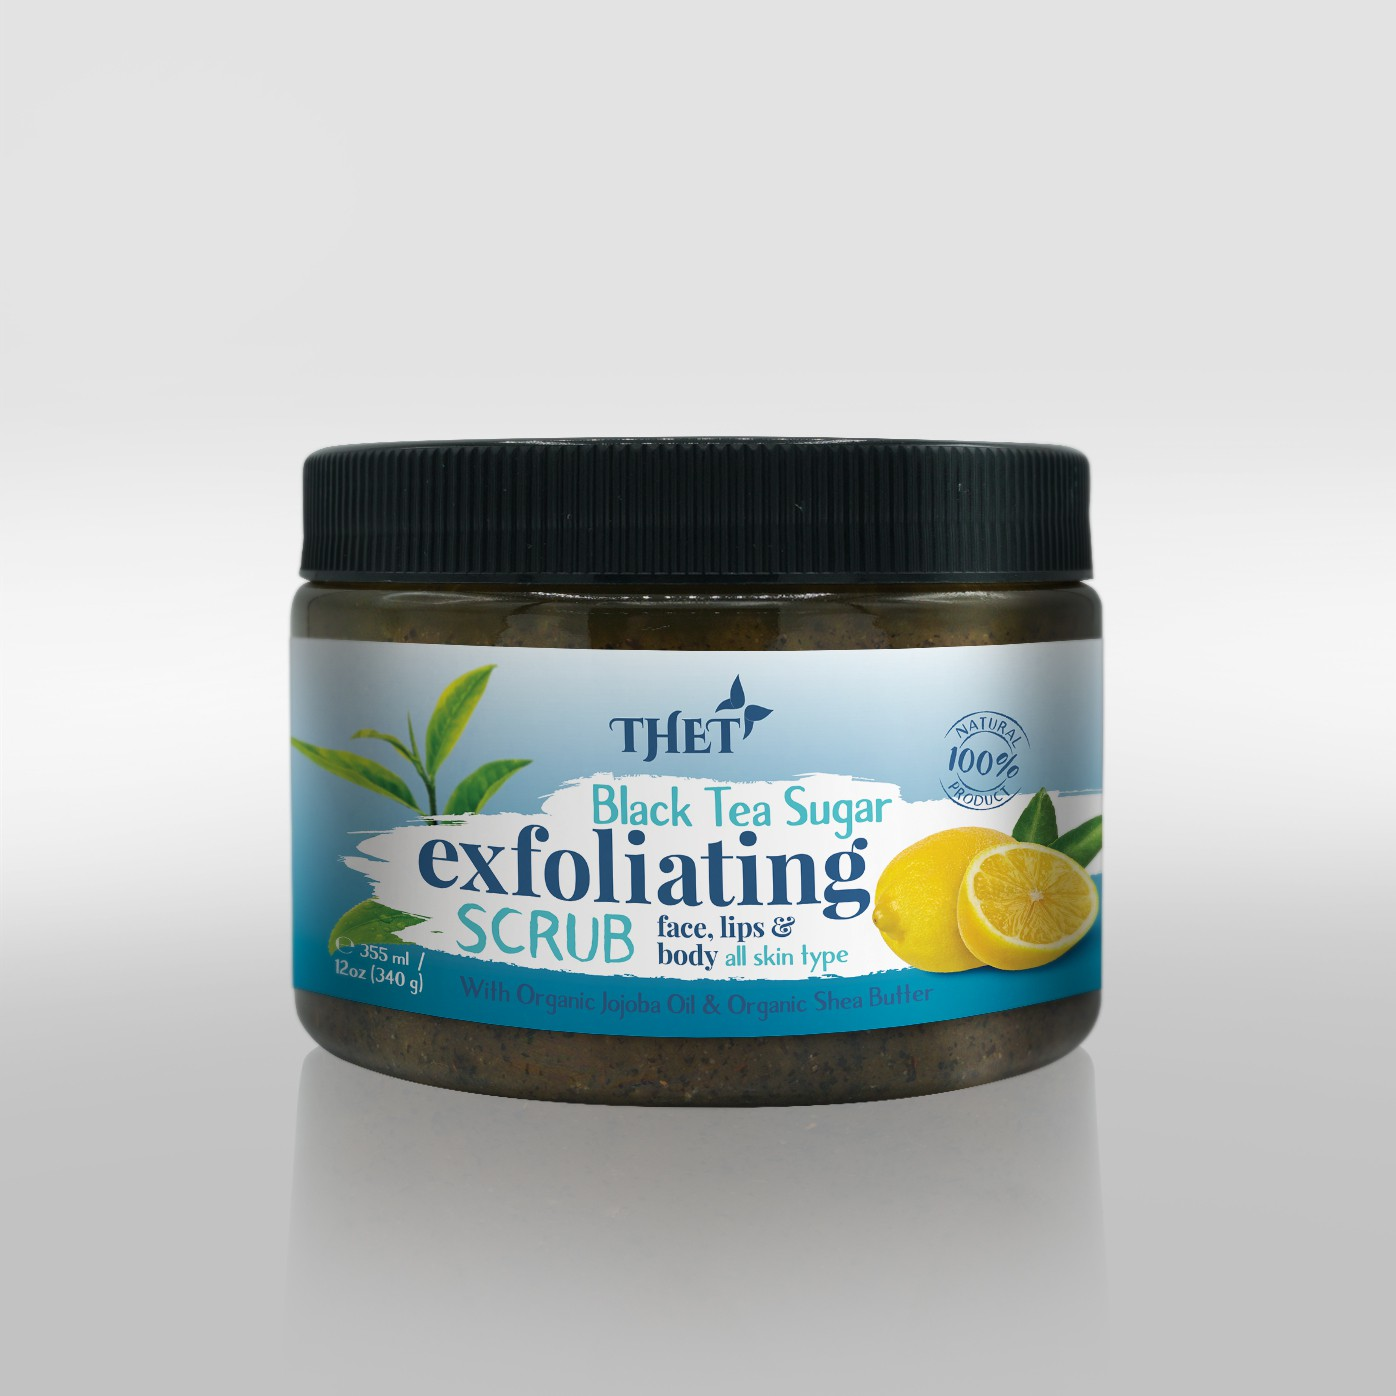 Design a charming label with a pop of color for an all natural face, lips, and body scrub